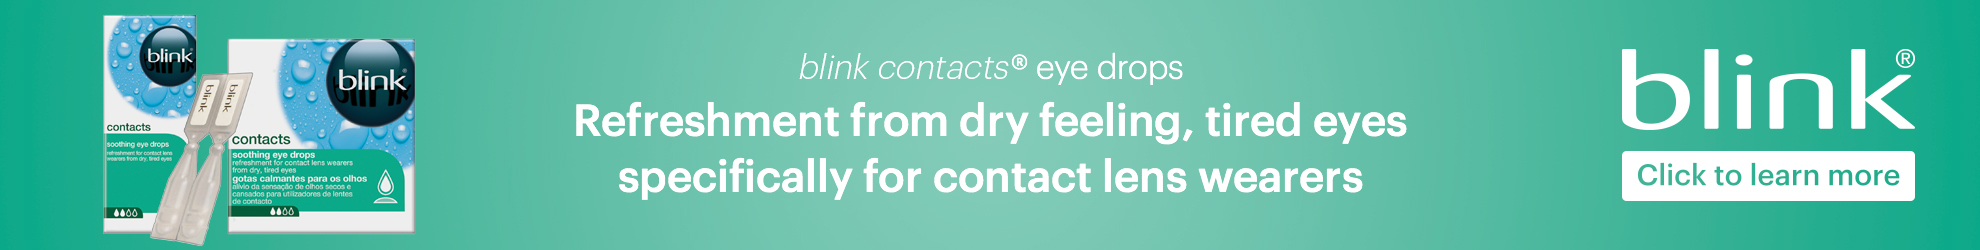 Blink Contacts Drops